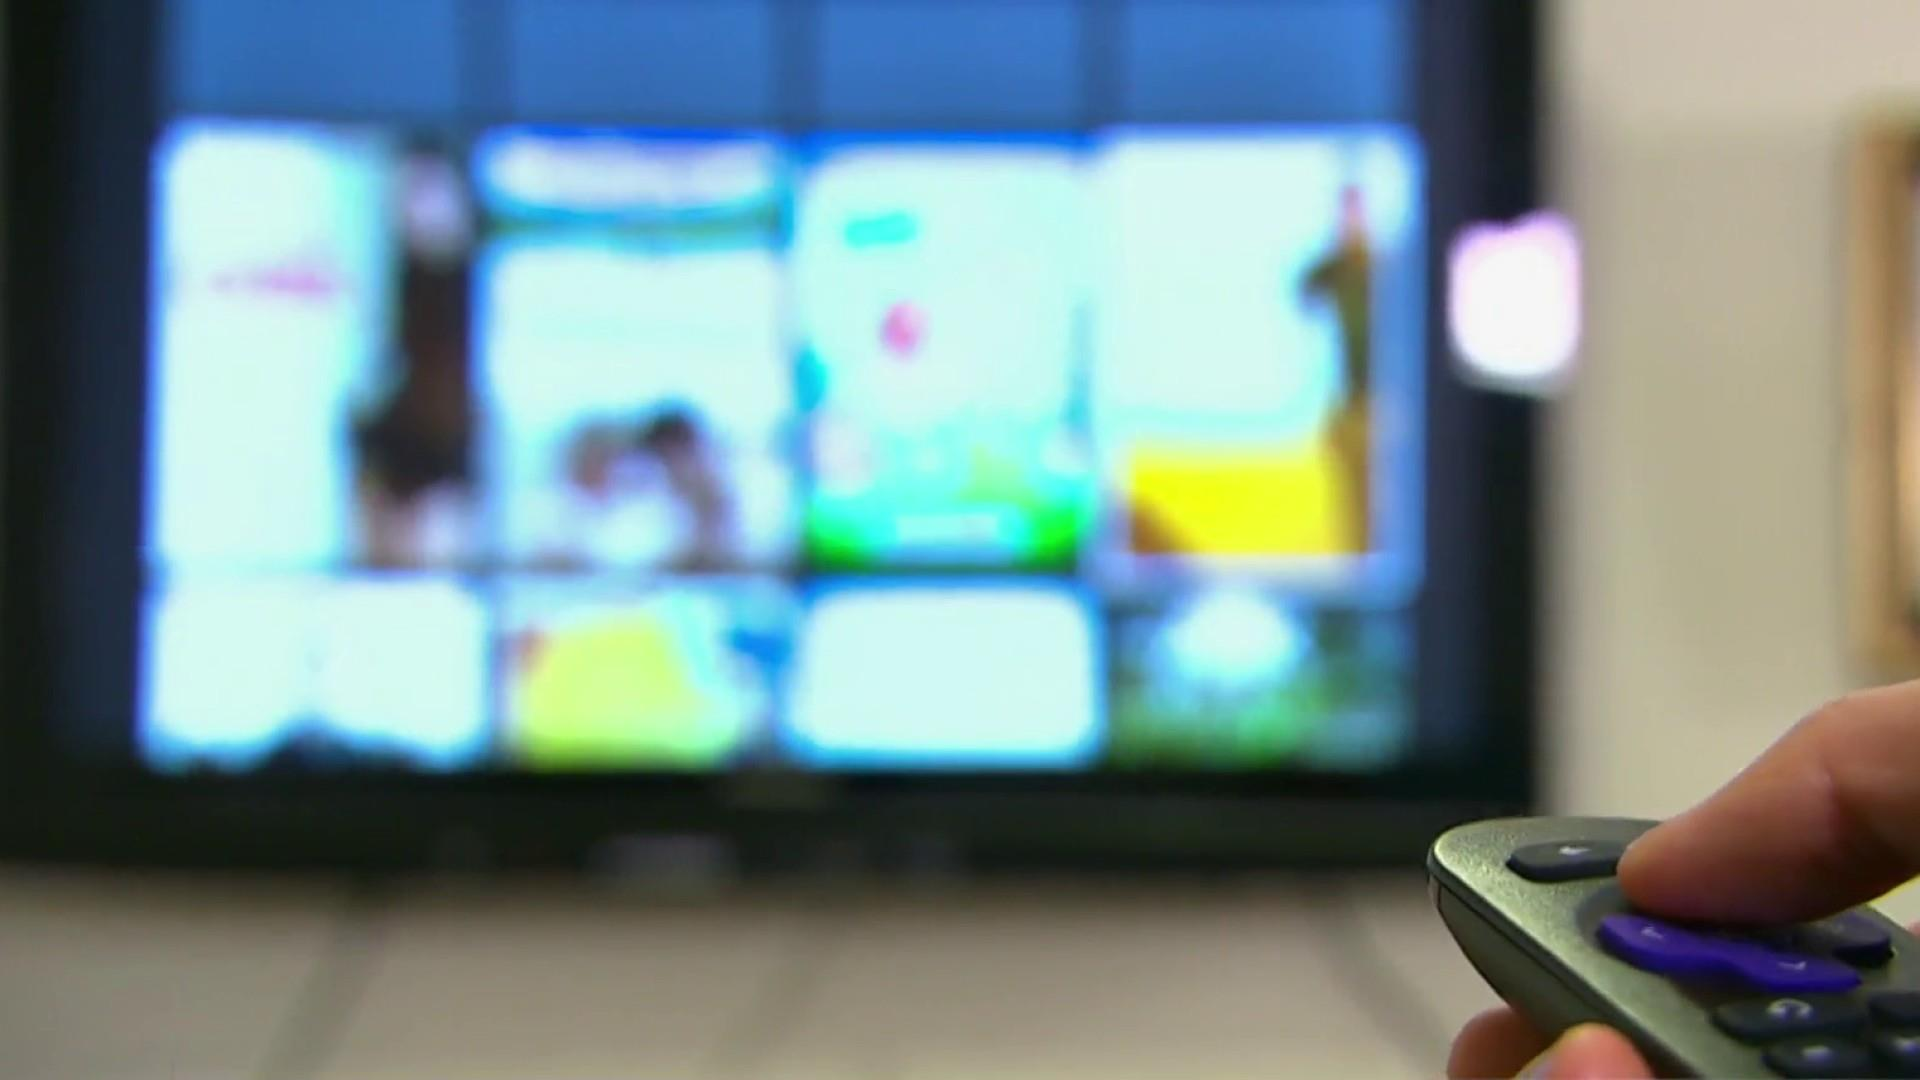 Your smart TV is watching you watching TV, Consumer Reports finds